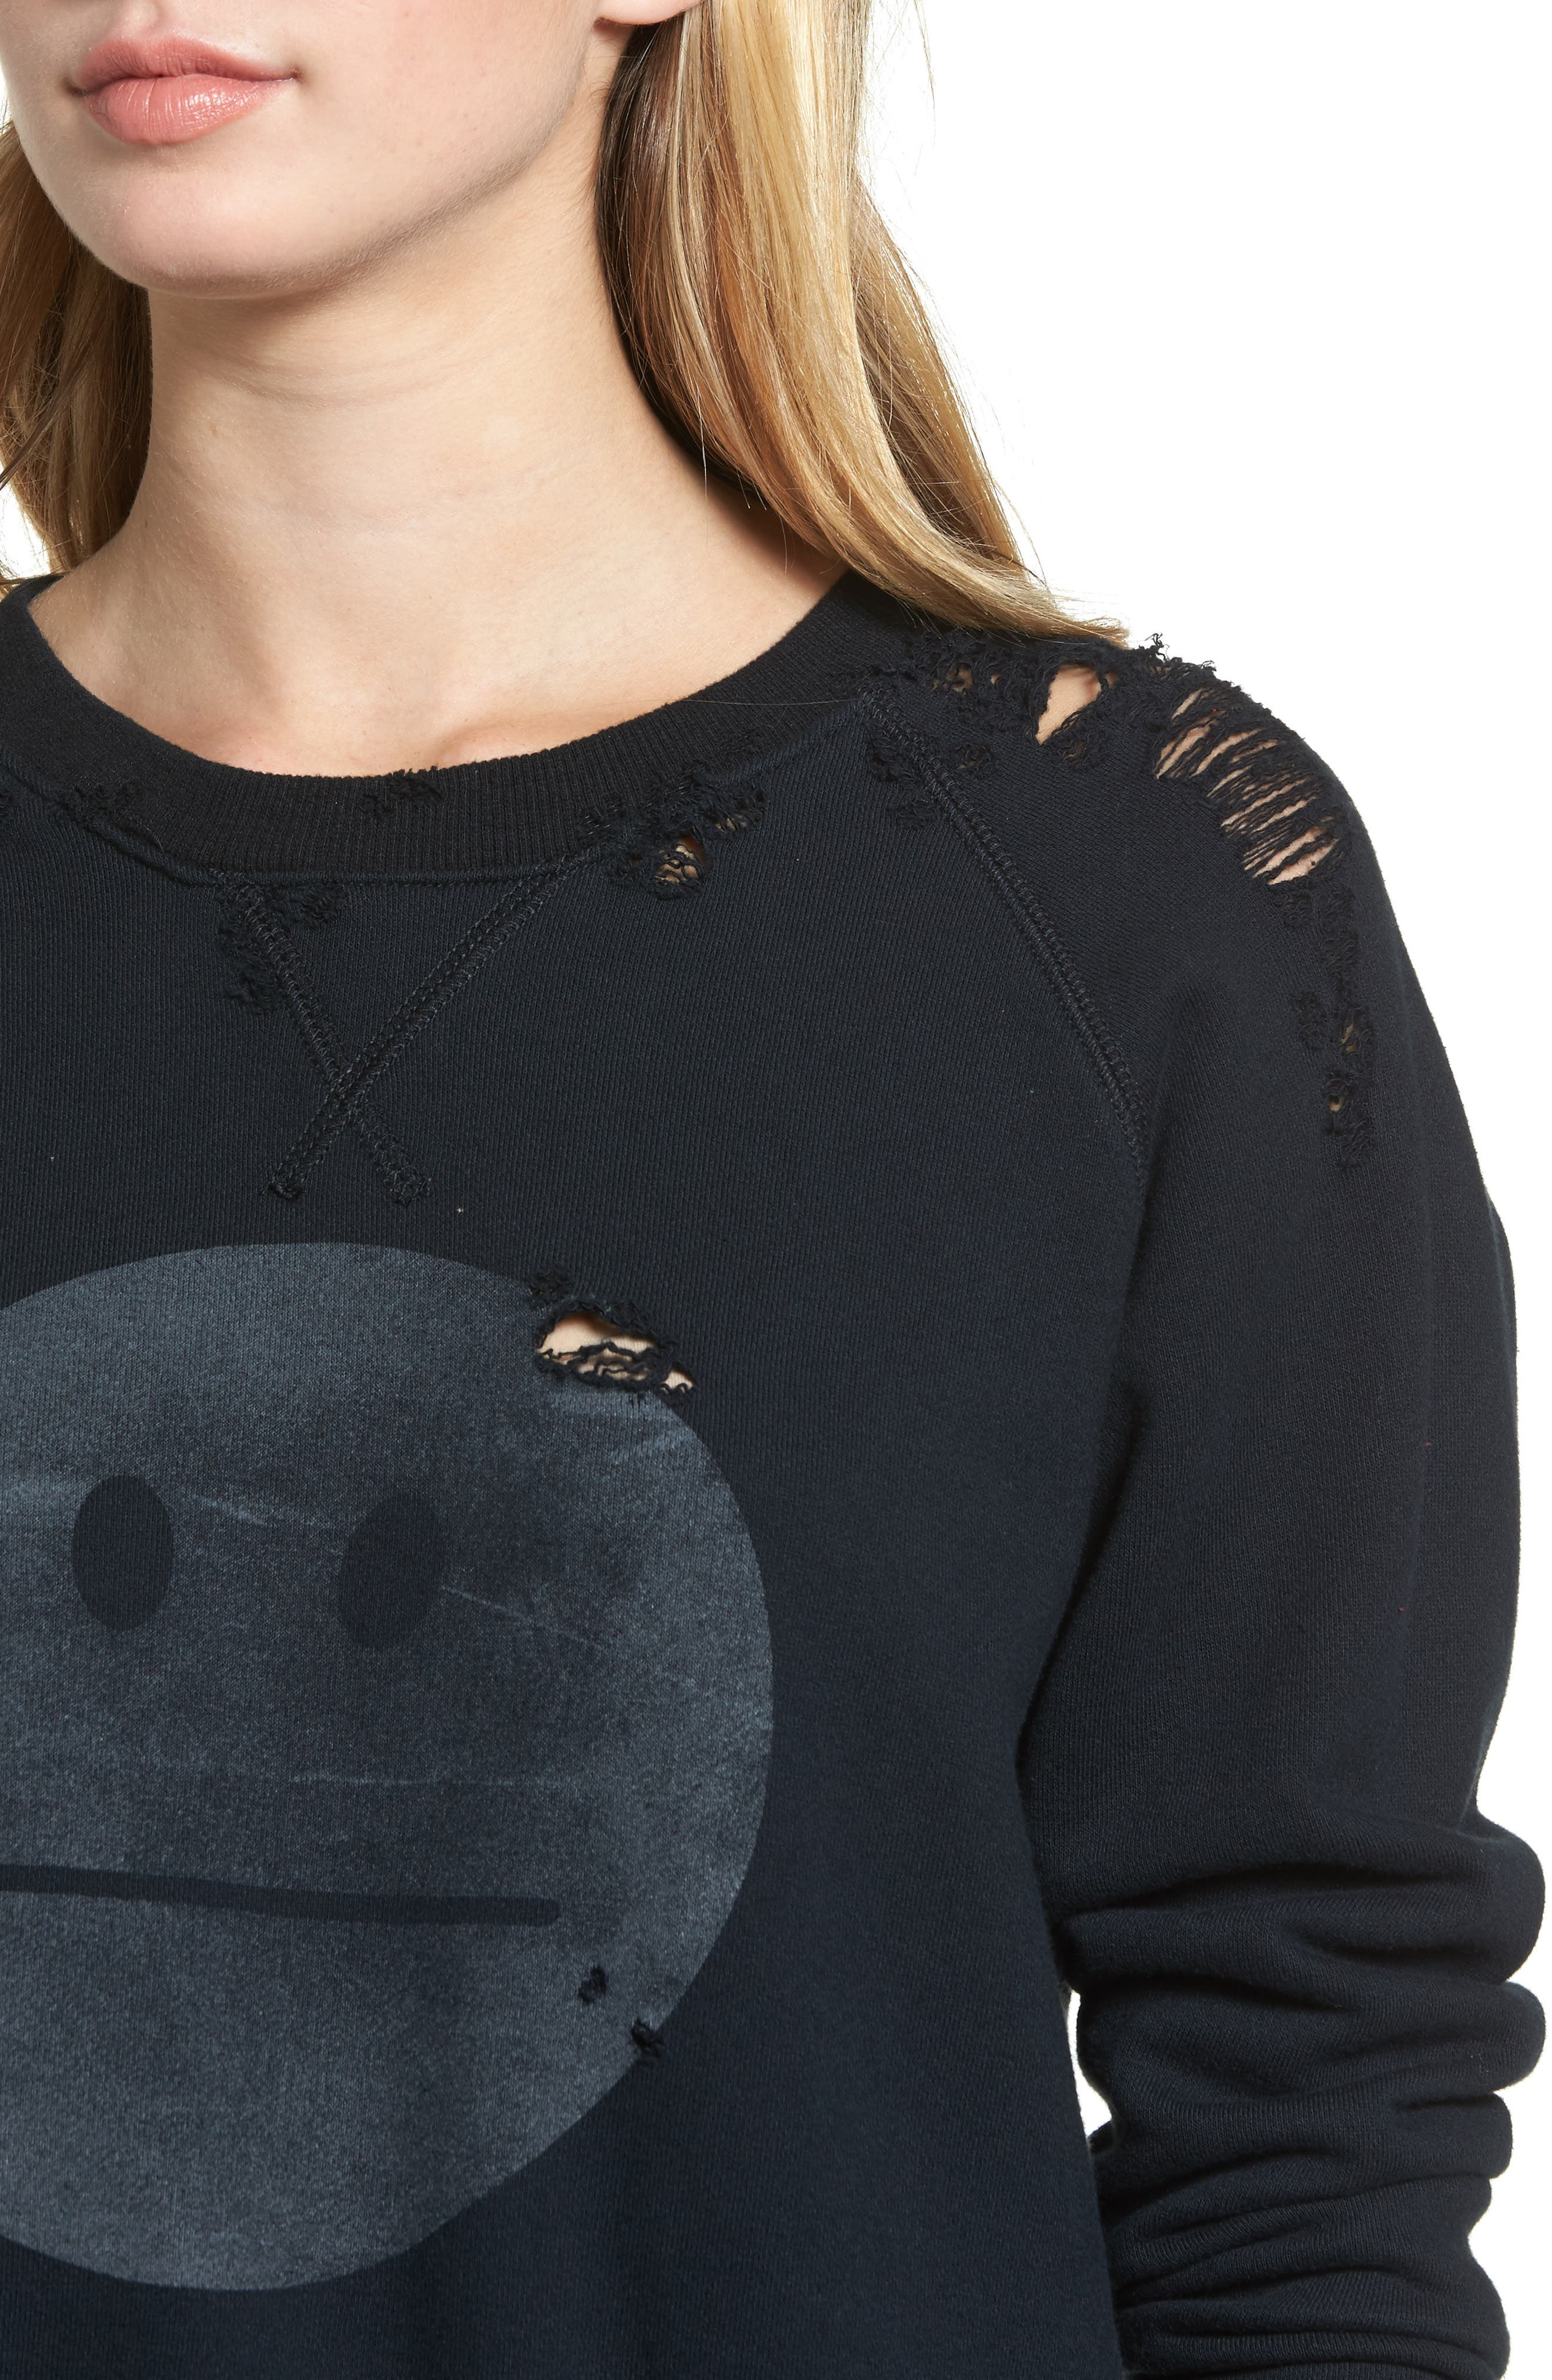 MOTHER, 'The Square' Destroyed Graphic Pullover Sweatshirt, Alternate thumbnail 4, color, 016